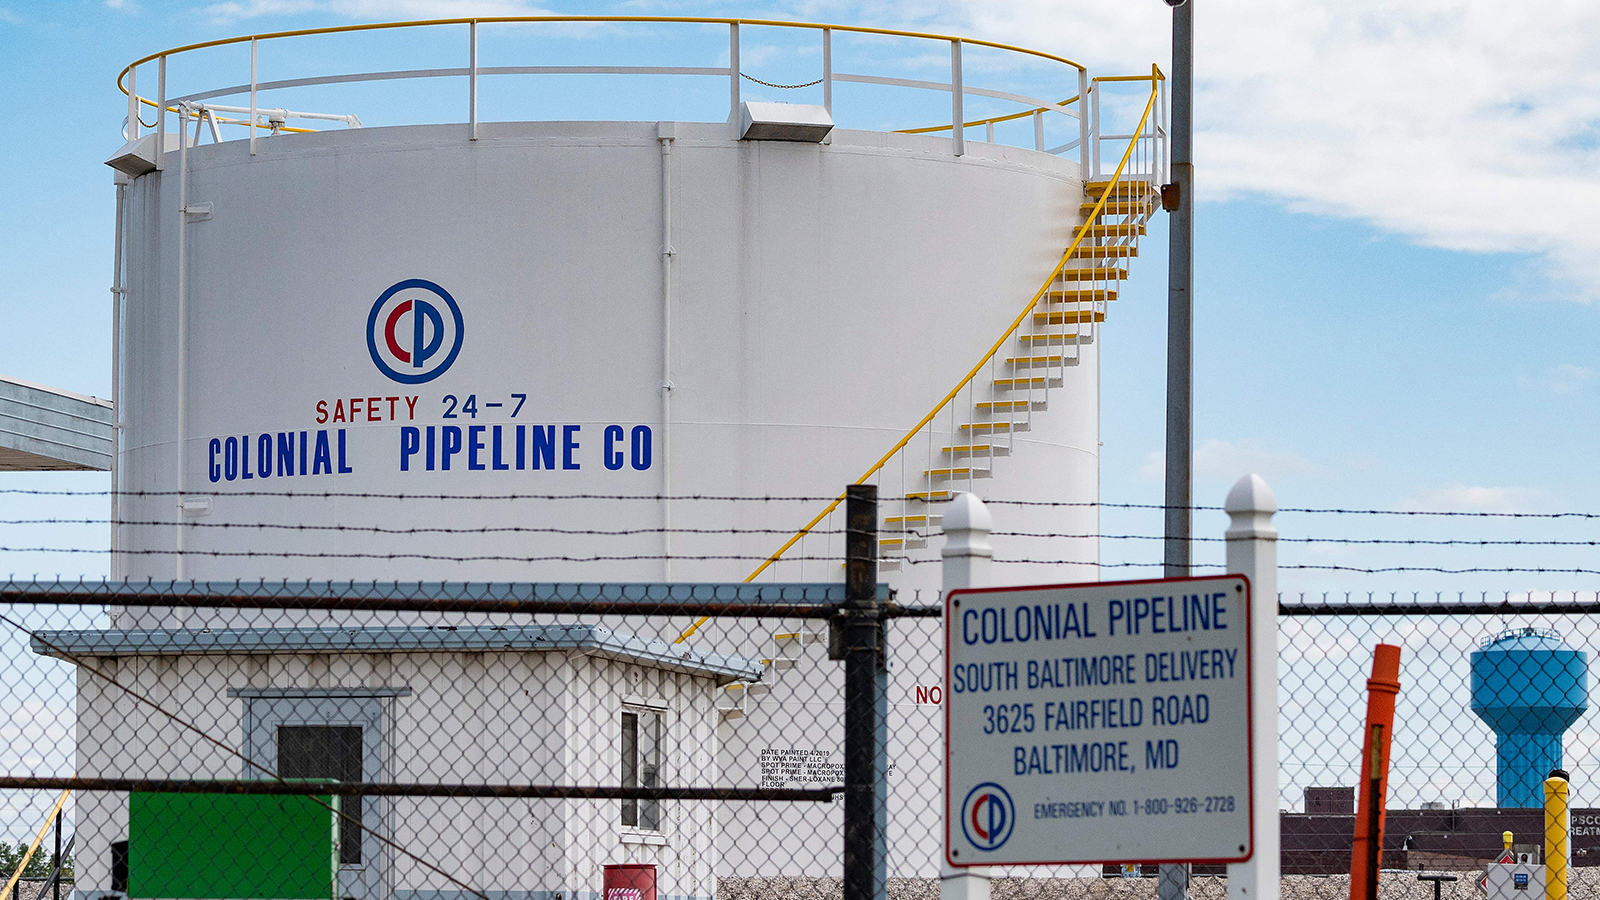 Fuel tanks are seen at Colonial Pipeline Baltimore Delivery in Baltimore, Maryland on May 10.